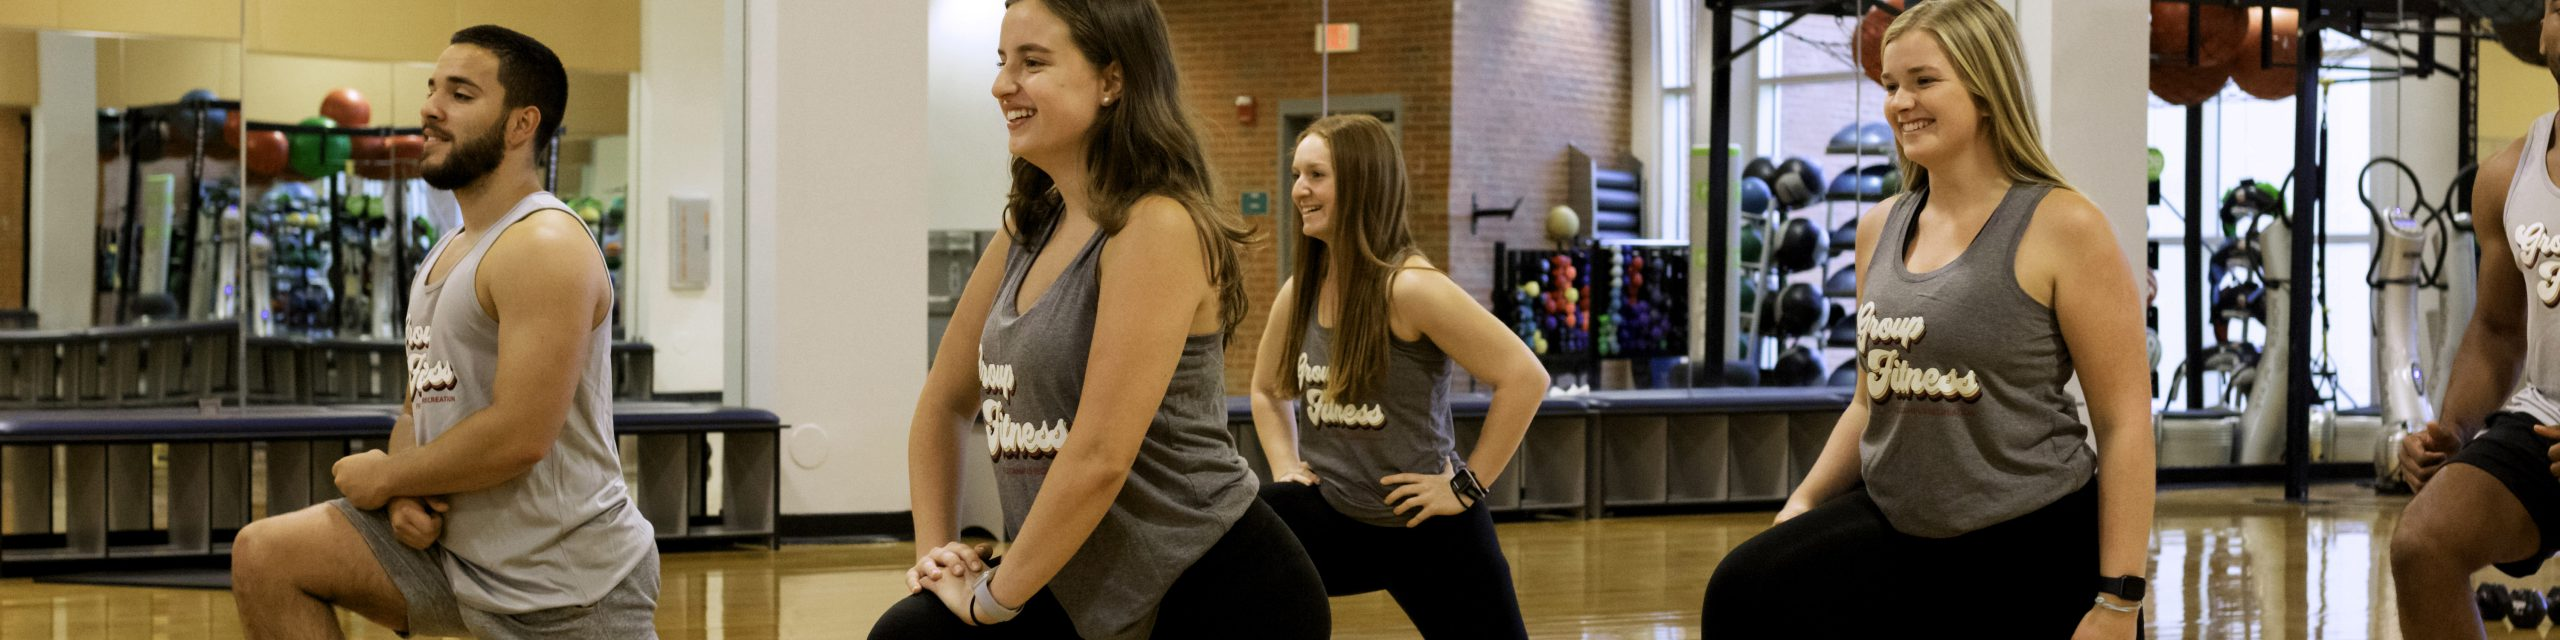 A group of people lunging in a group fitness class